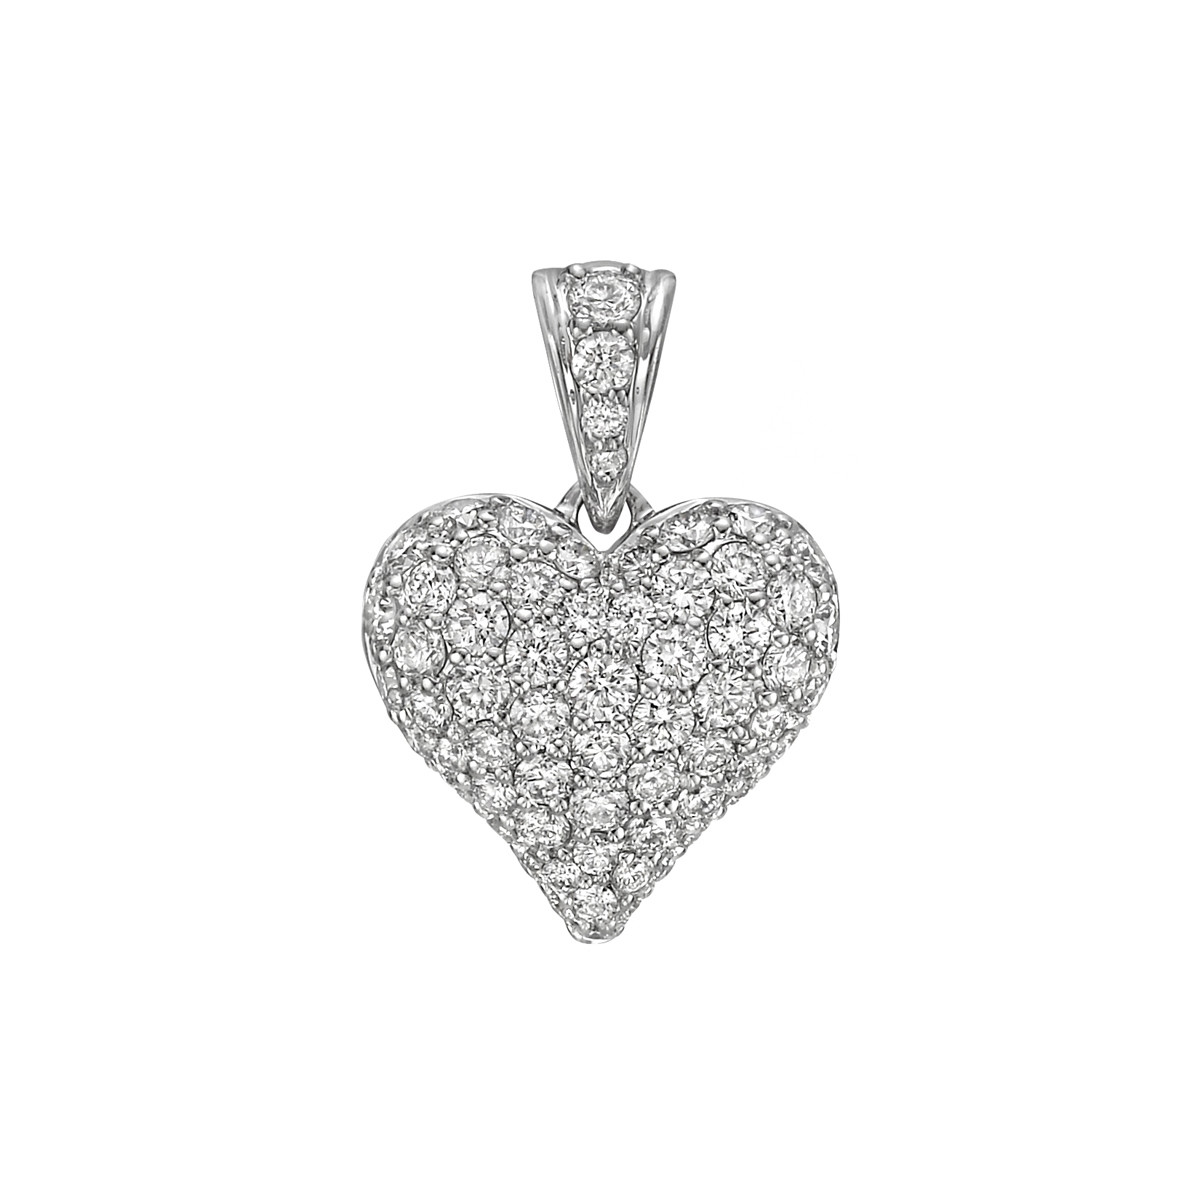 Medium Pavé Diamond Domed Heart Pendant